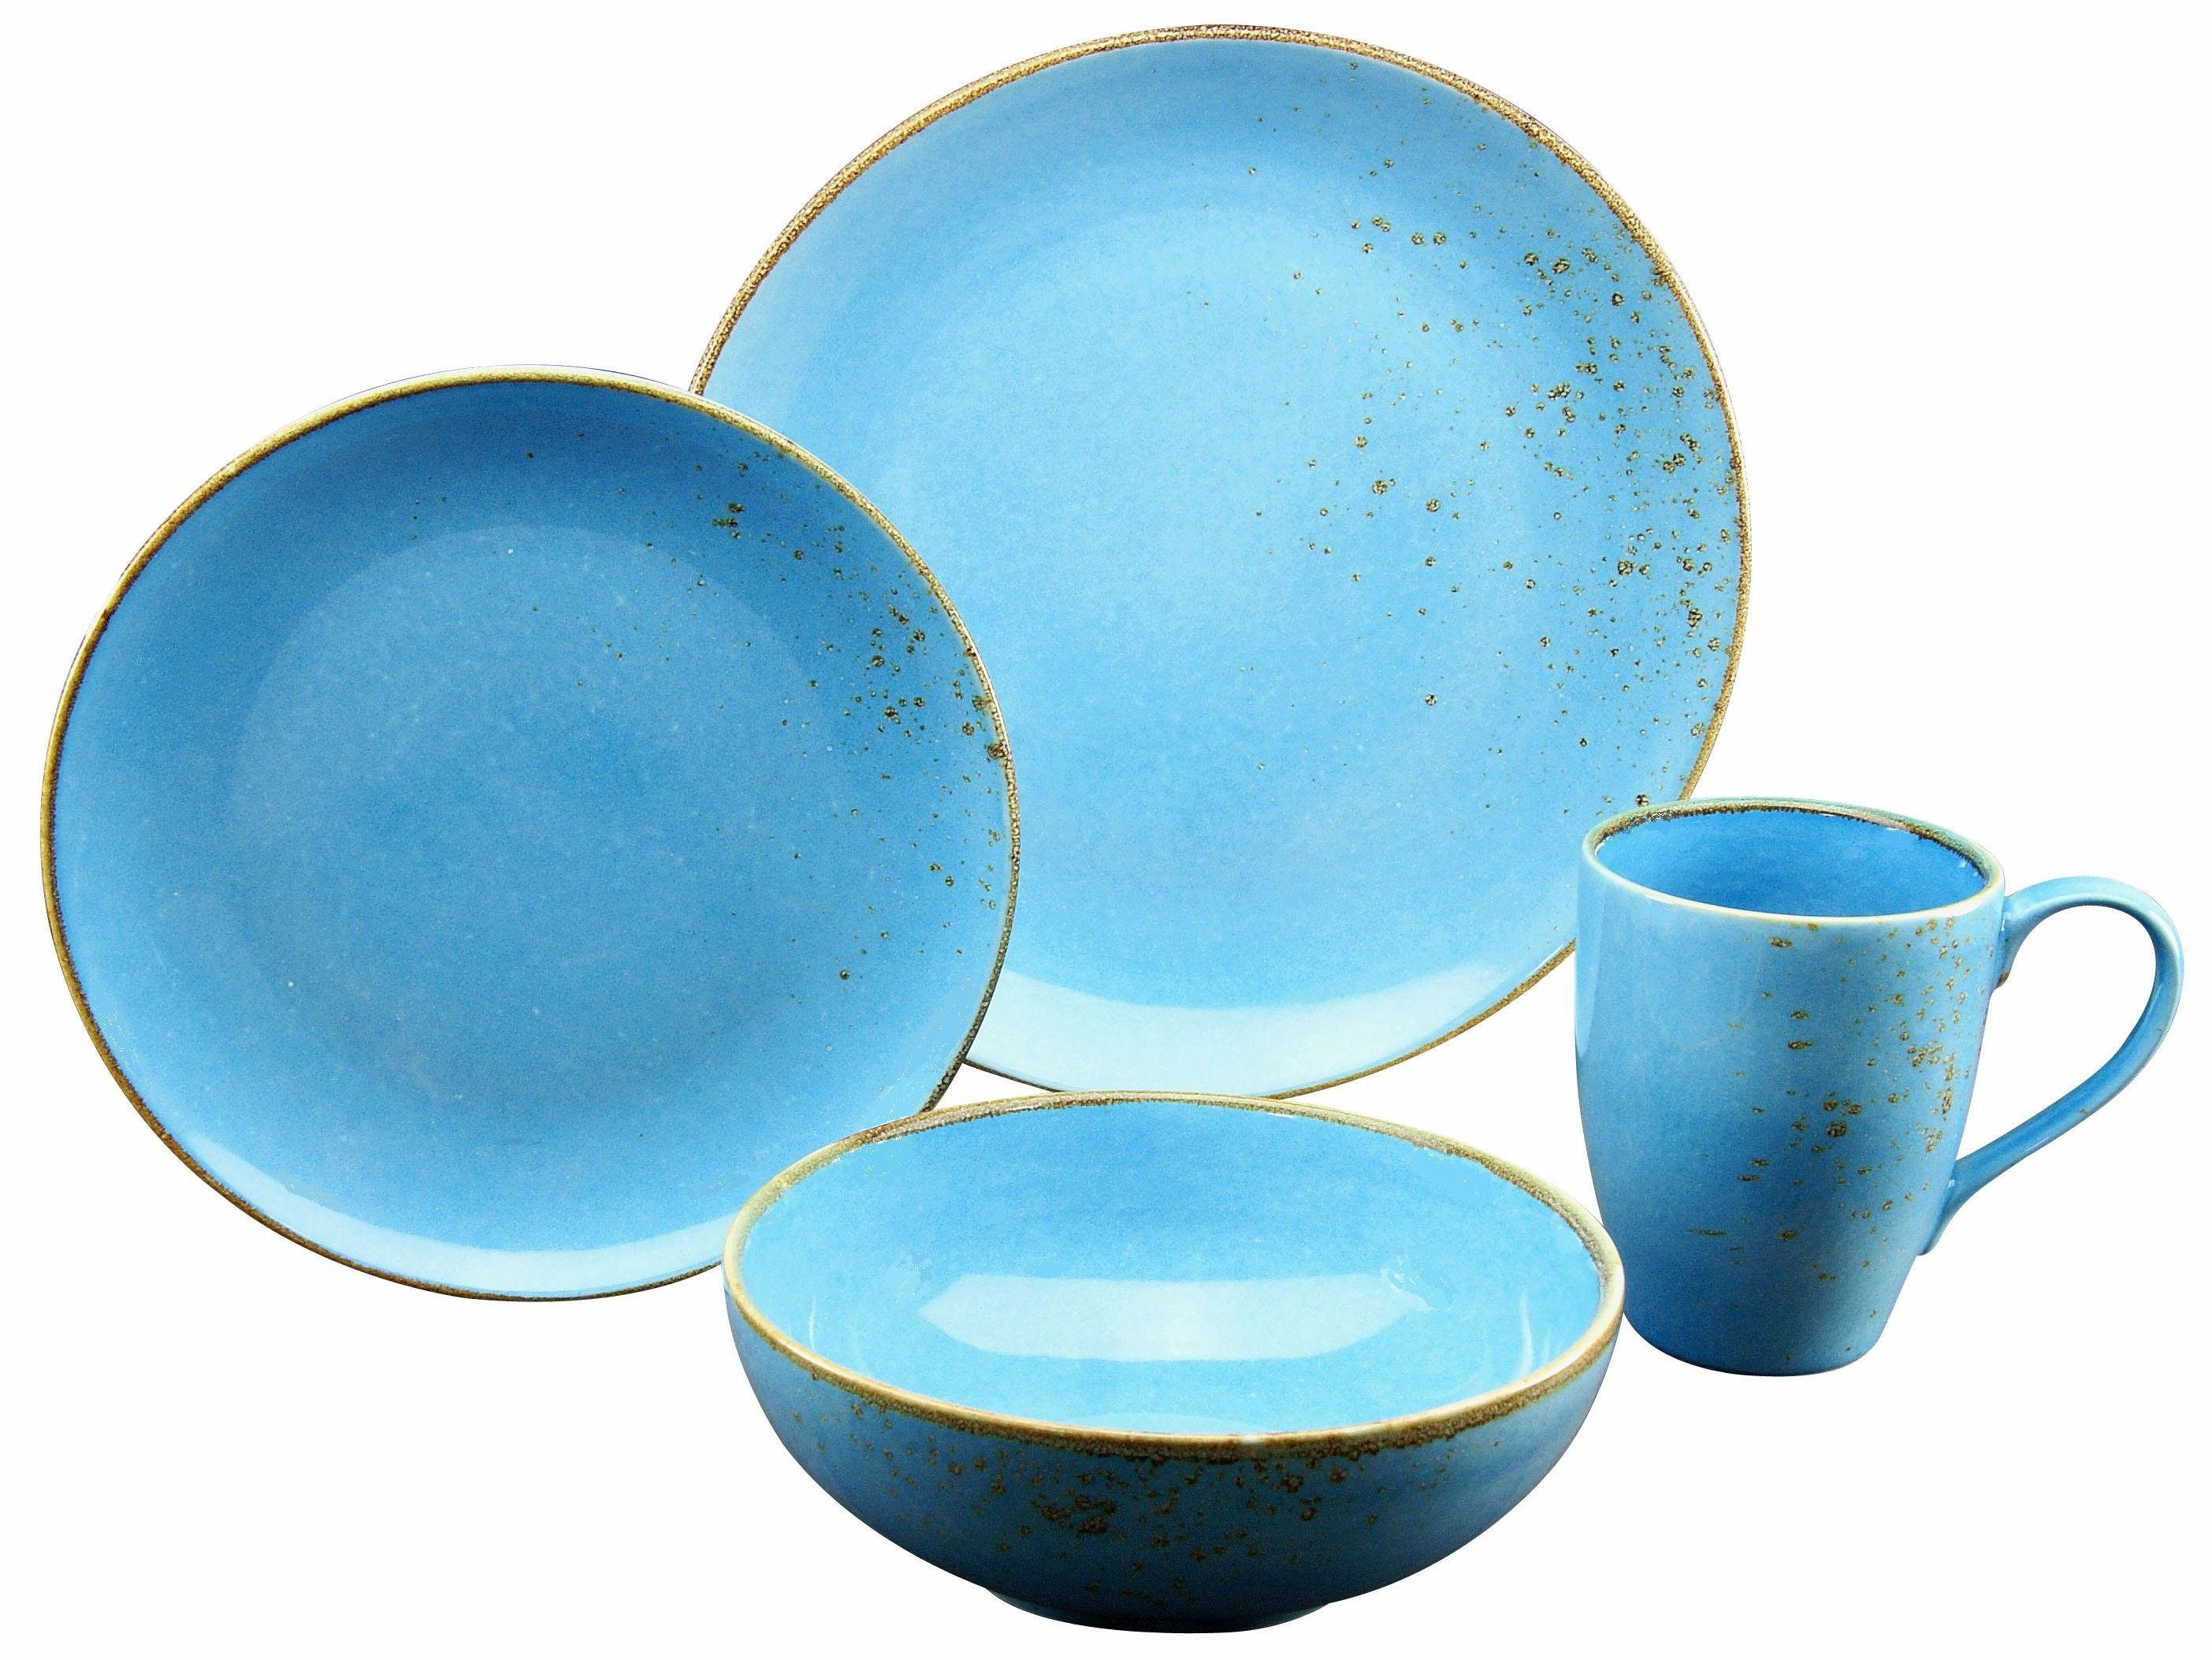 Blaues Geschirr Creatable Single Geschirr-set »mediterran« (4-tlg